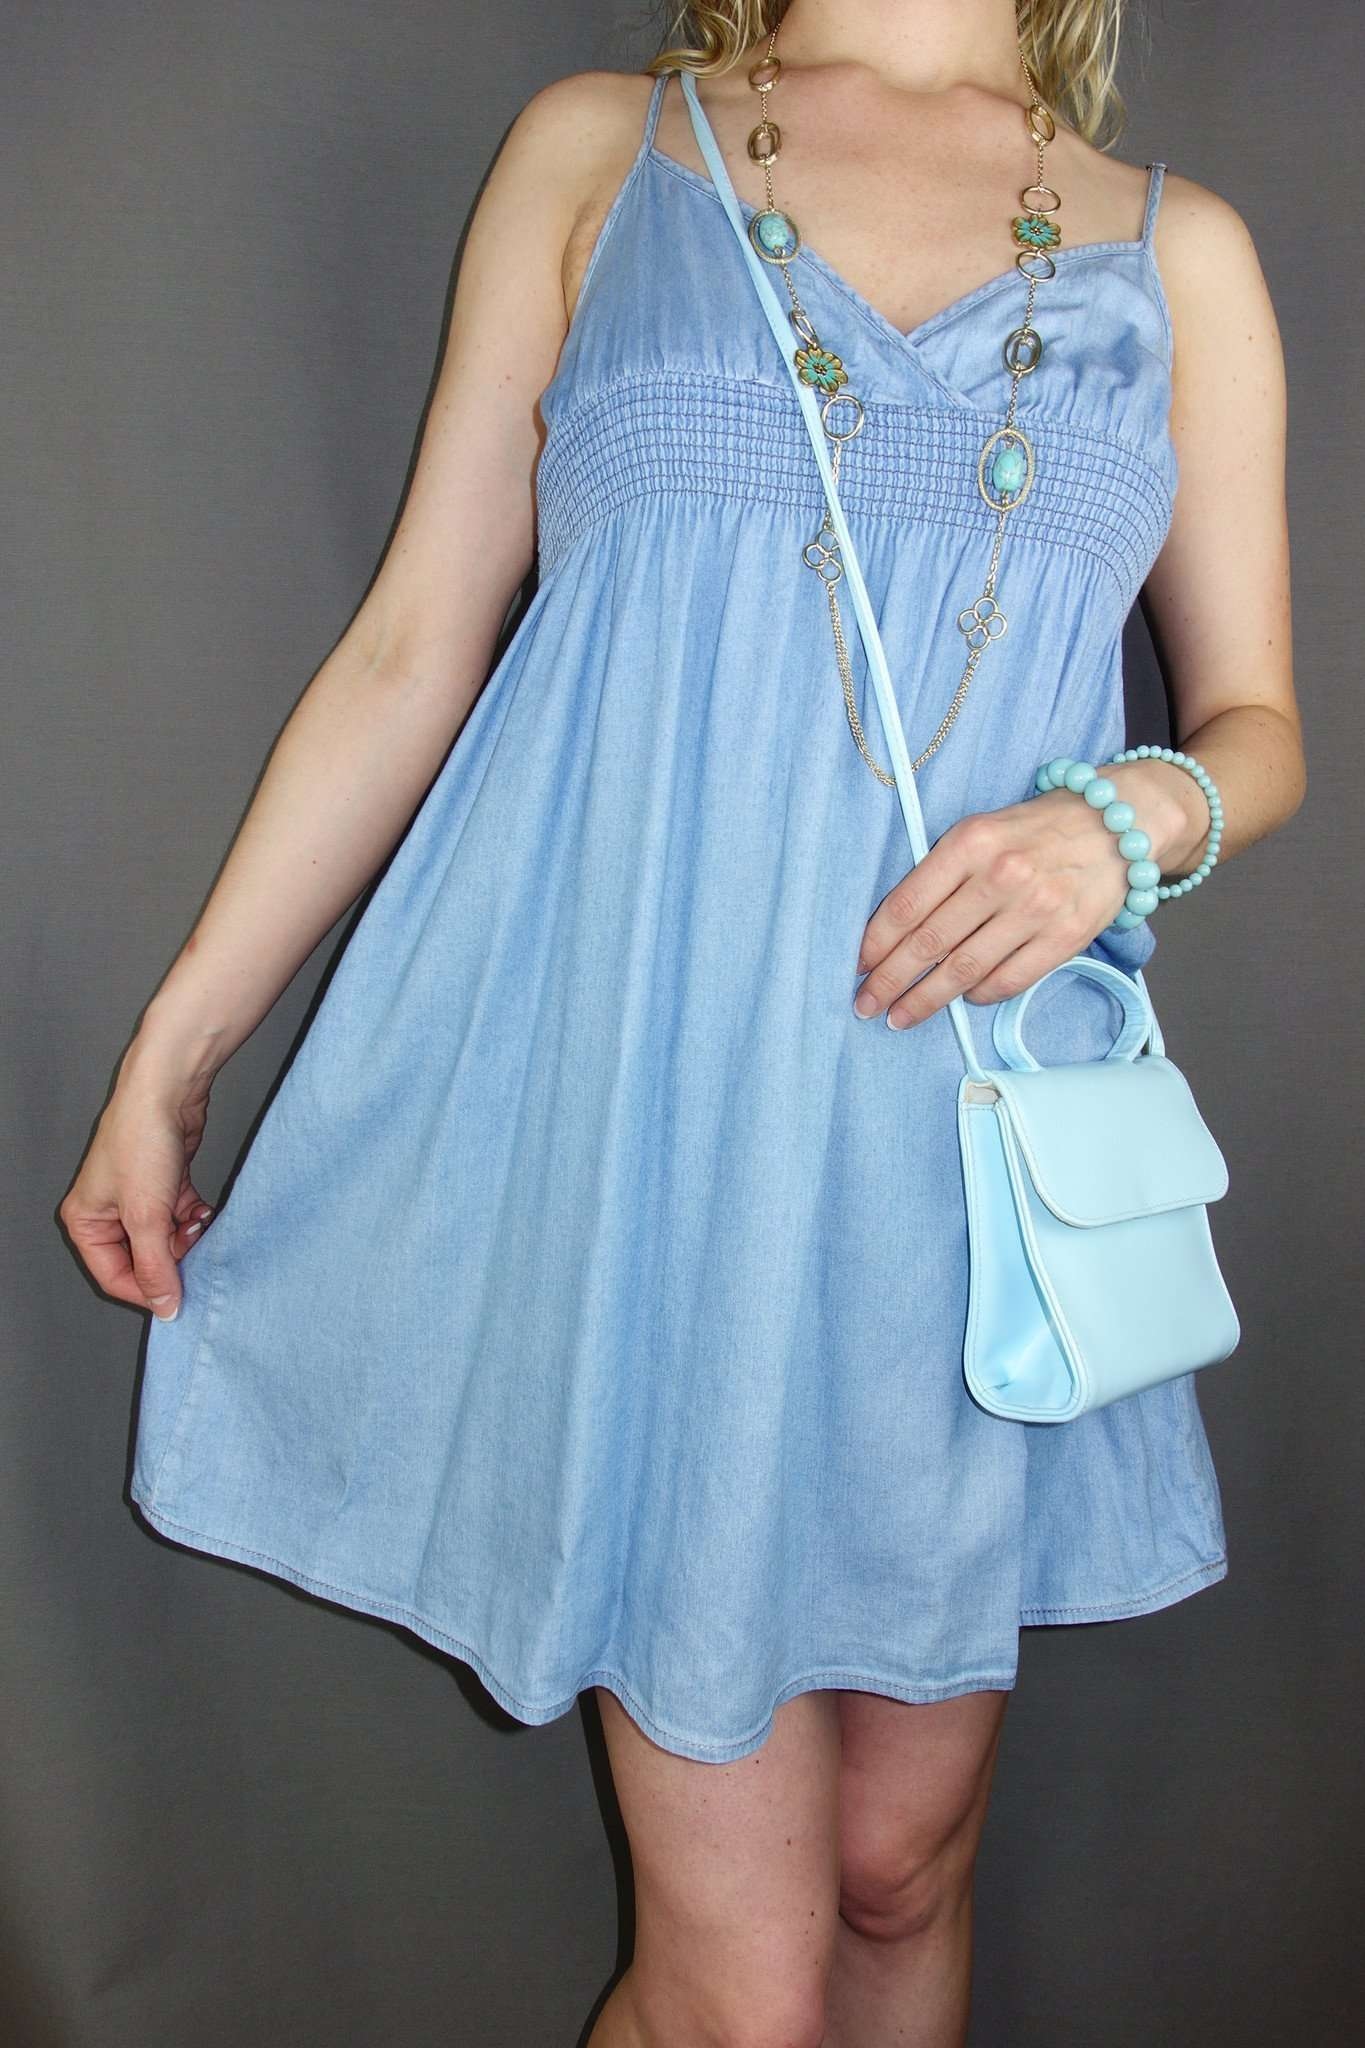 H&M Blue Denim Look Party Casual Dress Sleeveless Size 10 - Miss Glamess